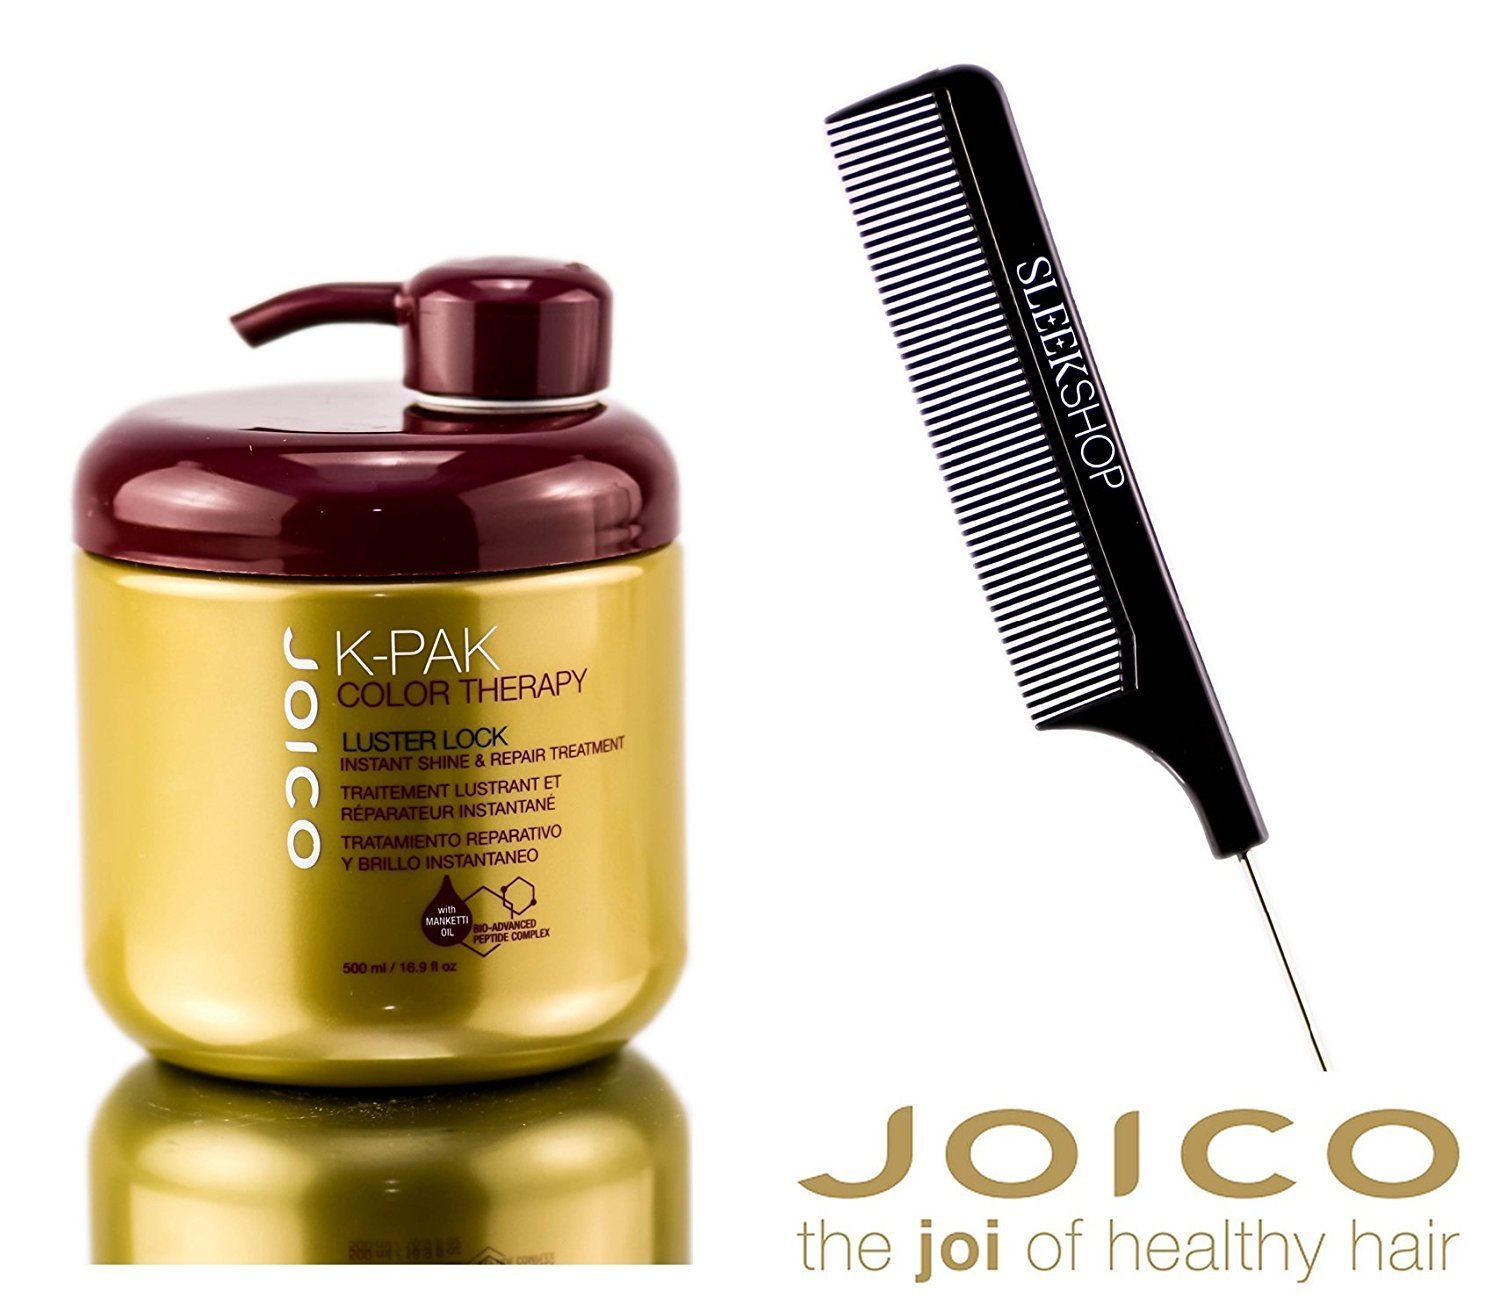 Joico K-Pak Color Therapy LUSTER LOCK – Instant Shine Repair Treatment with Sleek Steel Pin Tail Comb 8.5 oz 250 ml – NEW SIZE